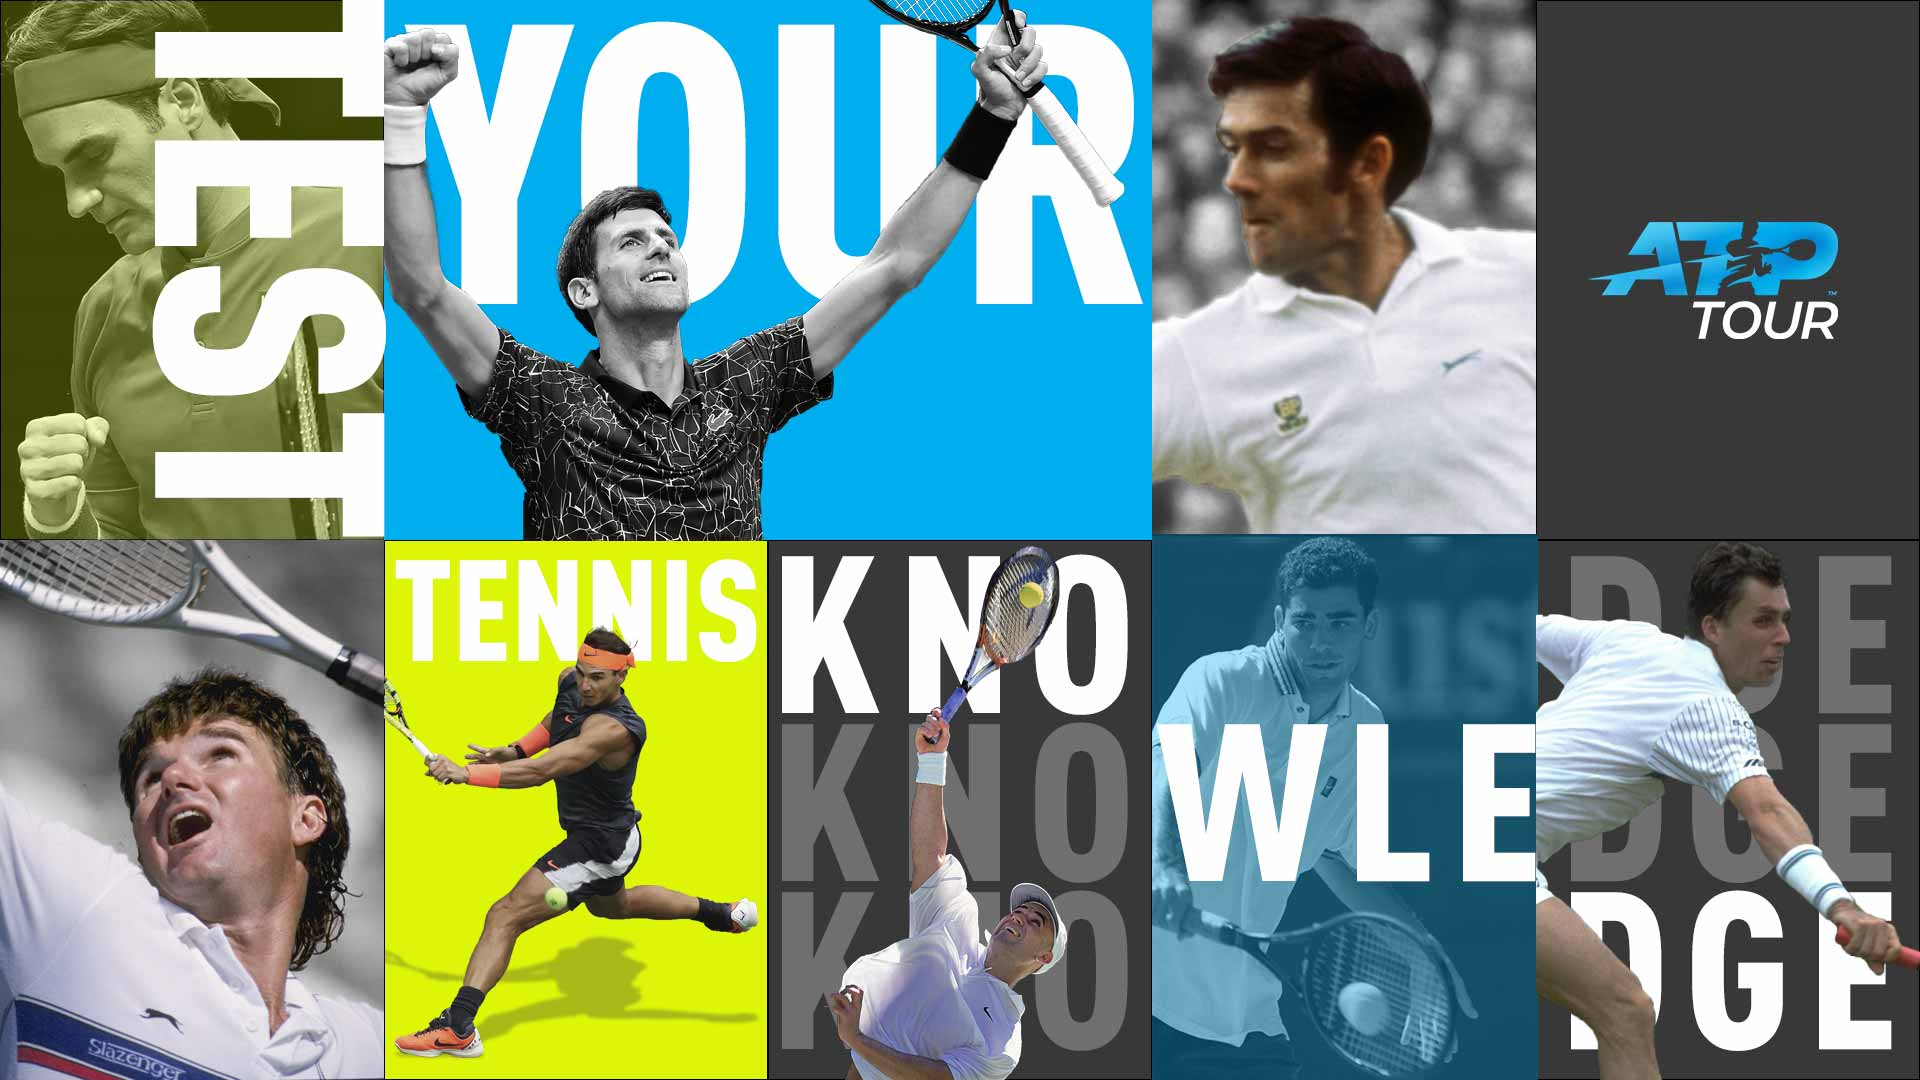 Test your tennis knowledge among the best fans in the world